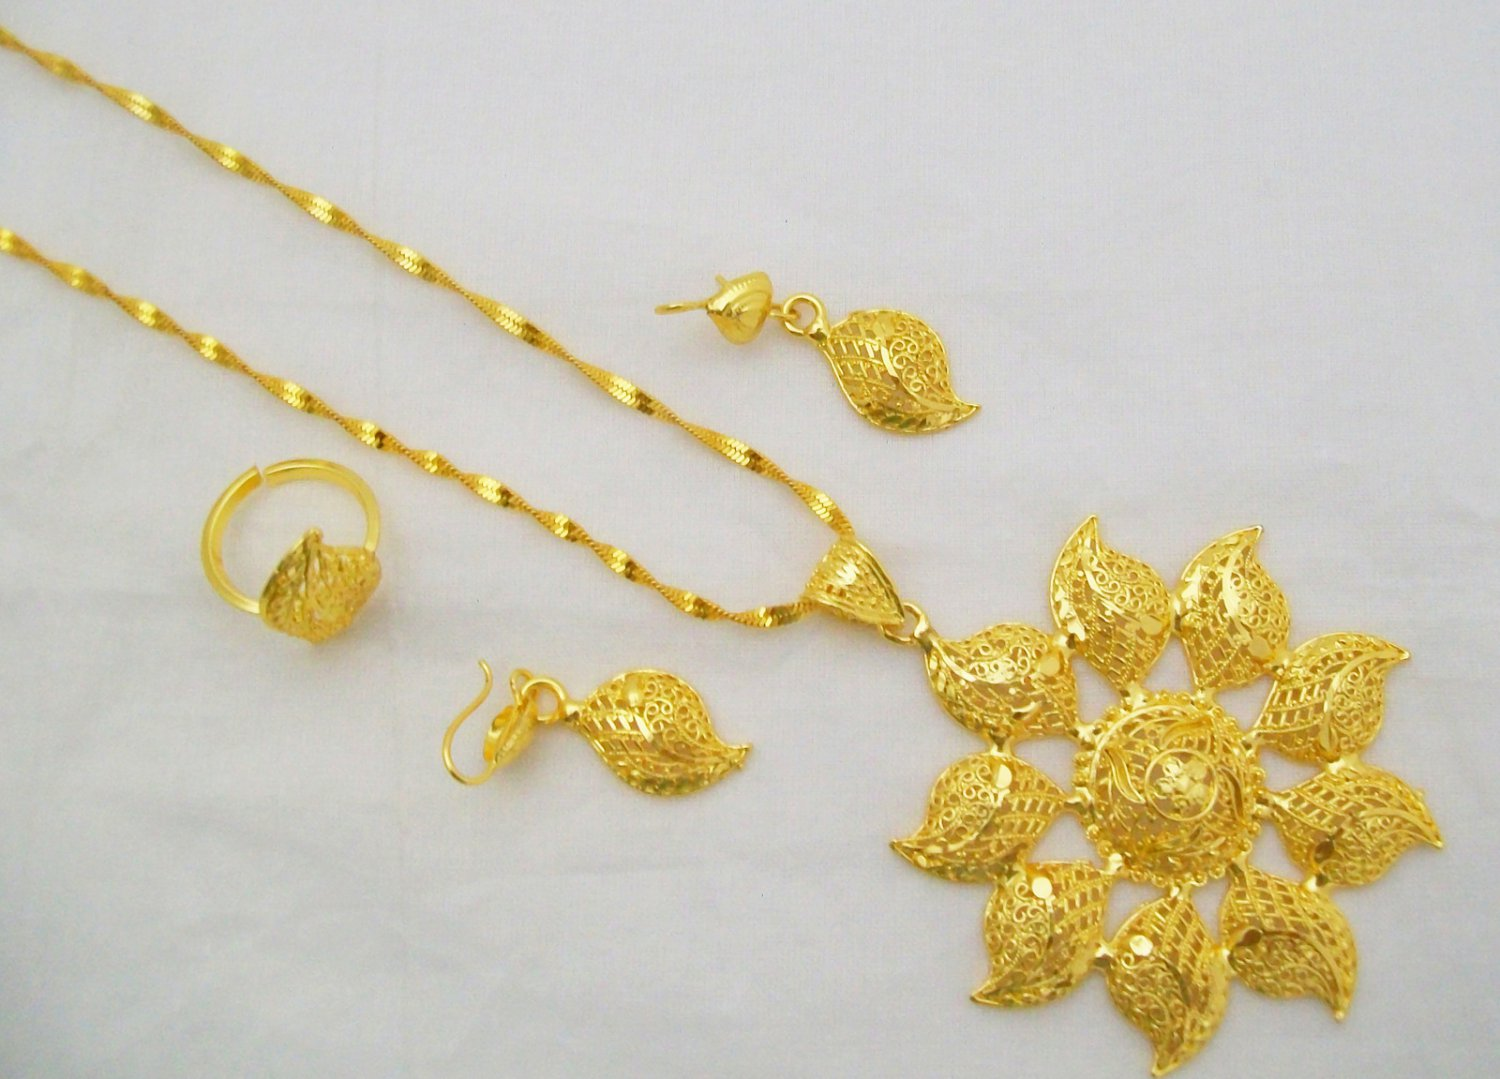 Antique Swirl Design Filigree Gold Plated Chain Pendant Necklace Indian Jewelry Set